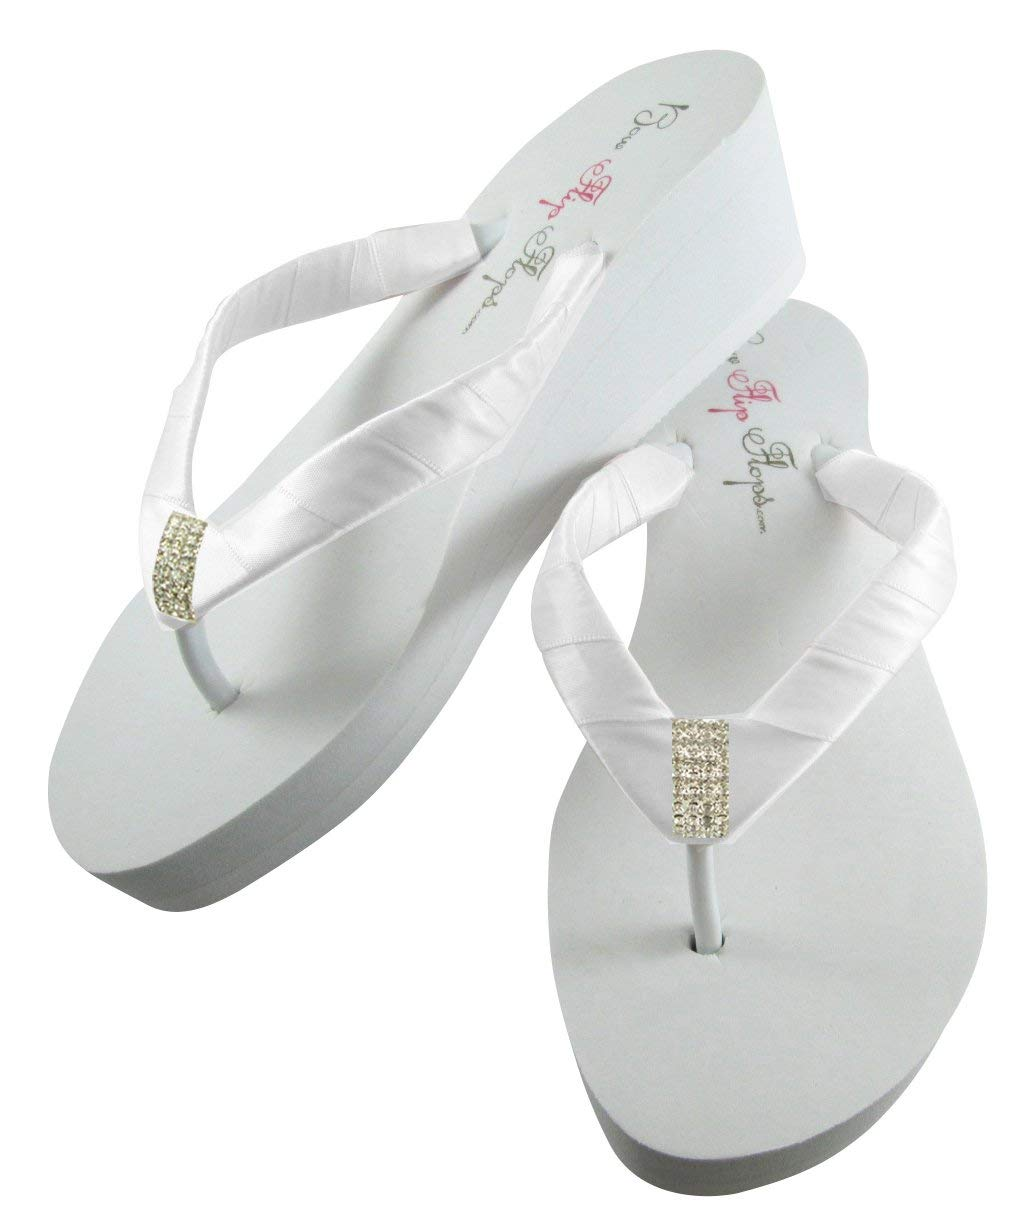 790beb17cab5 Get Quotations · White or Ivory Emerald Cut 2 inch Wedge Wedding Flip Flops